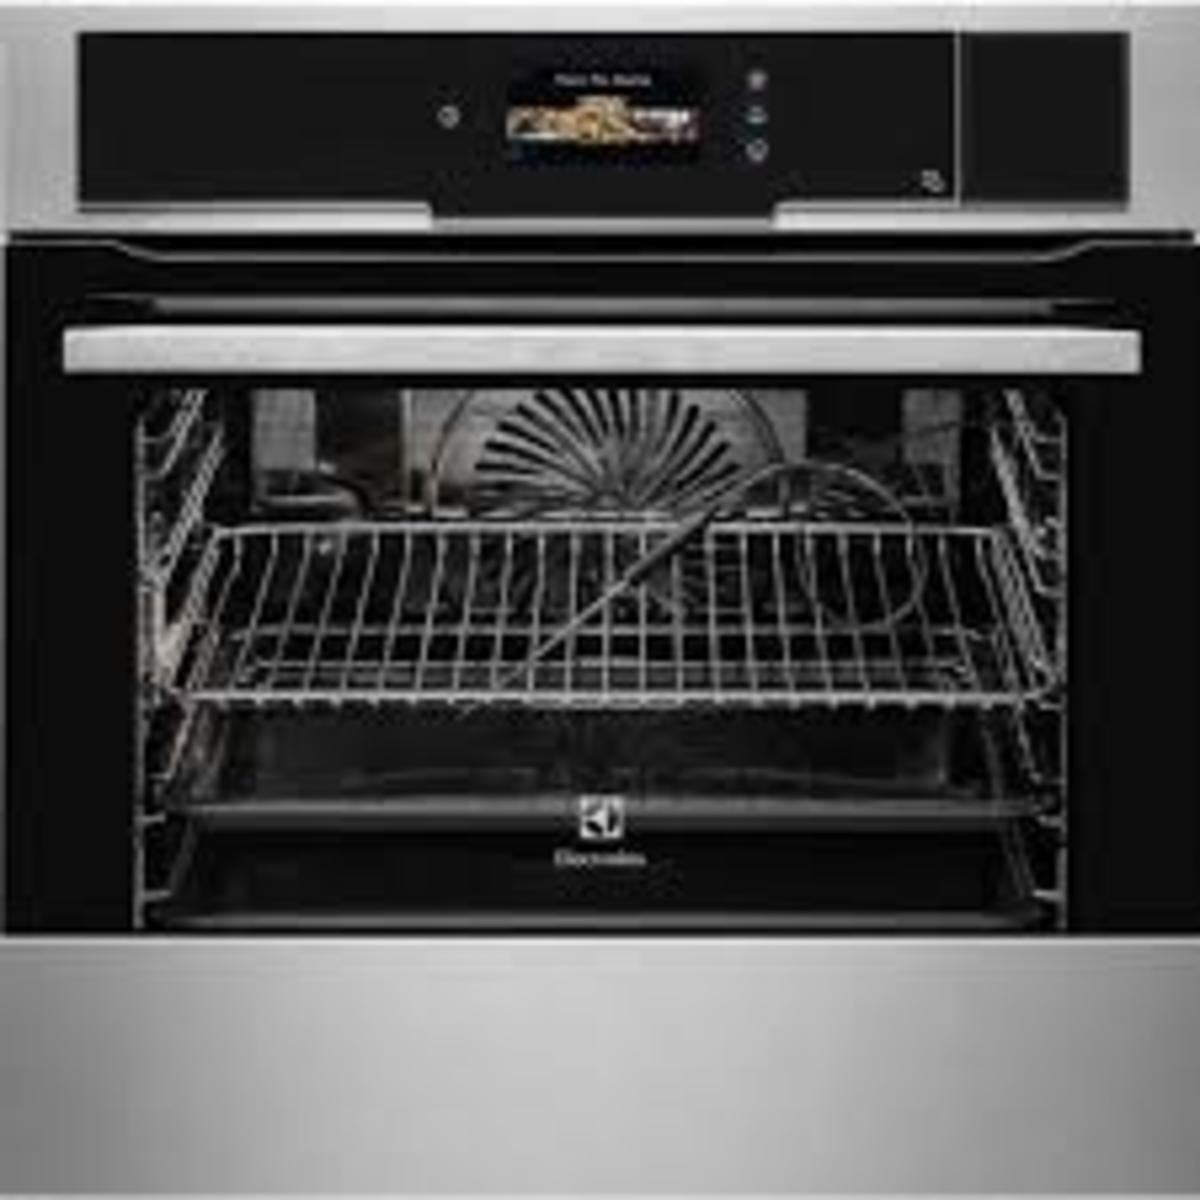 EOB9956XAX 73Litres Built-in Combination Steam Oven (2-year Elecrolux Warranty)